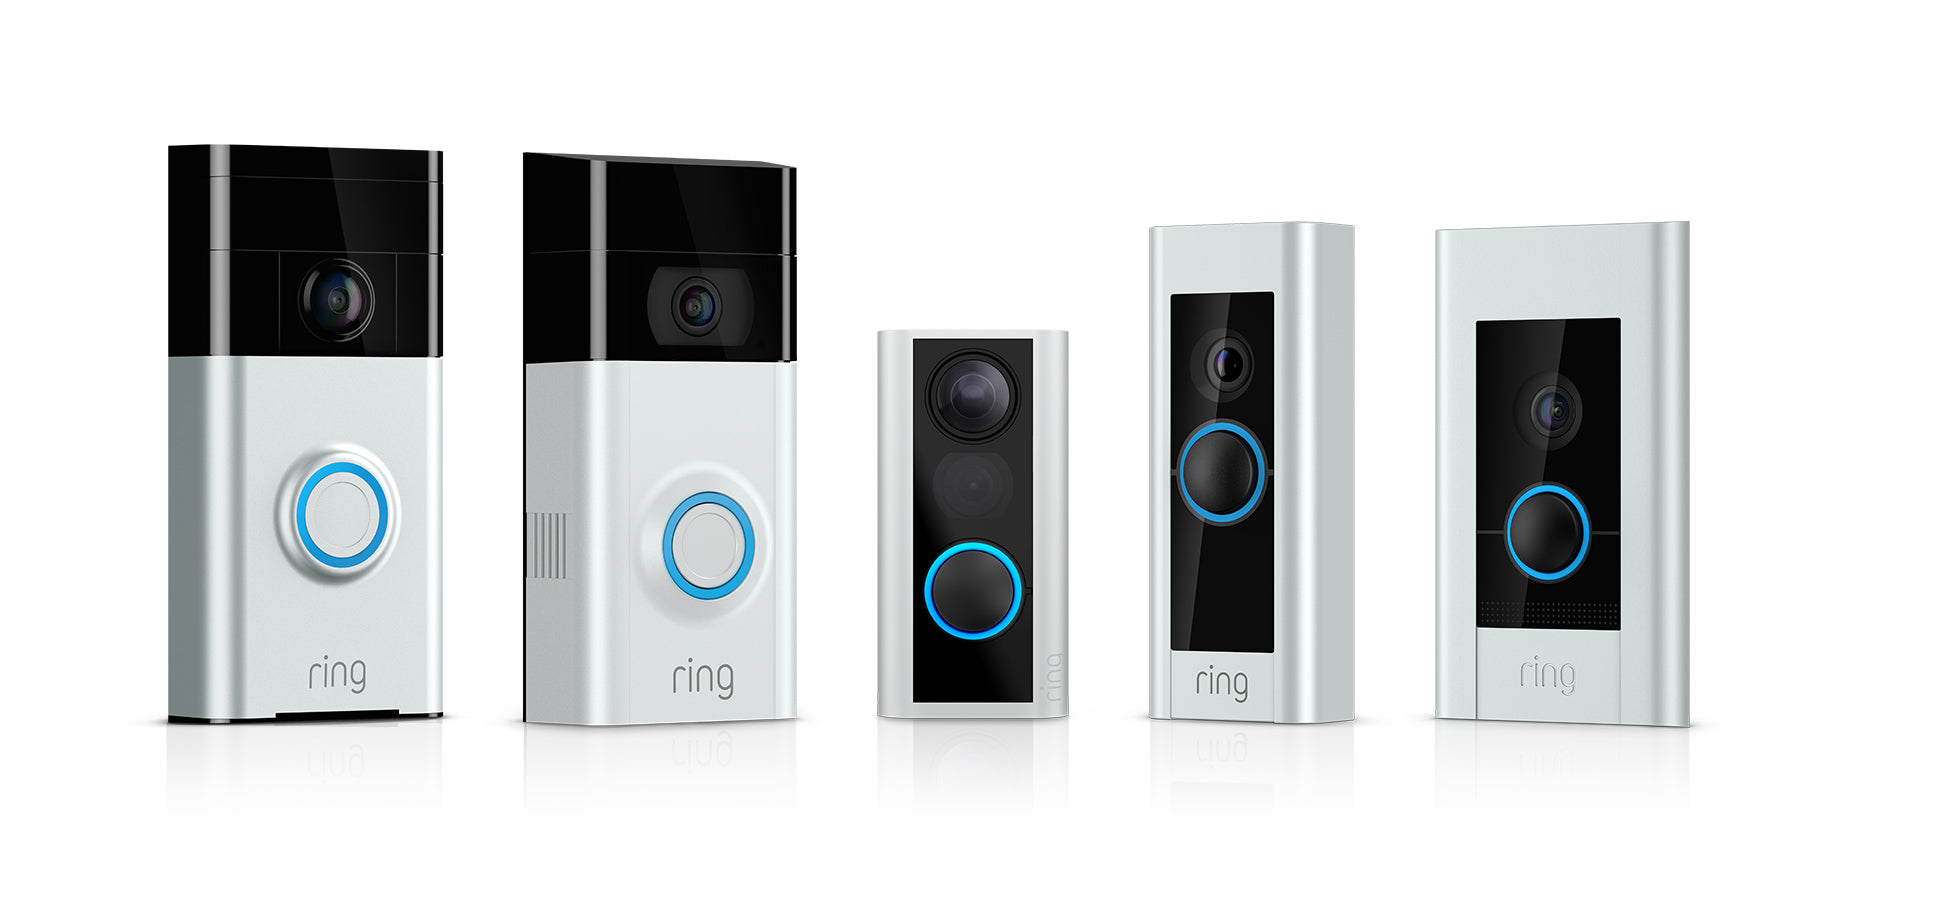 A doorbell for every home